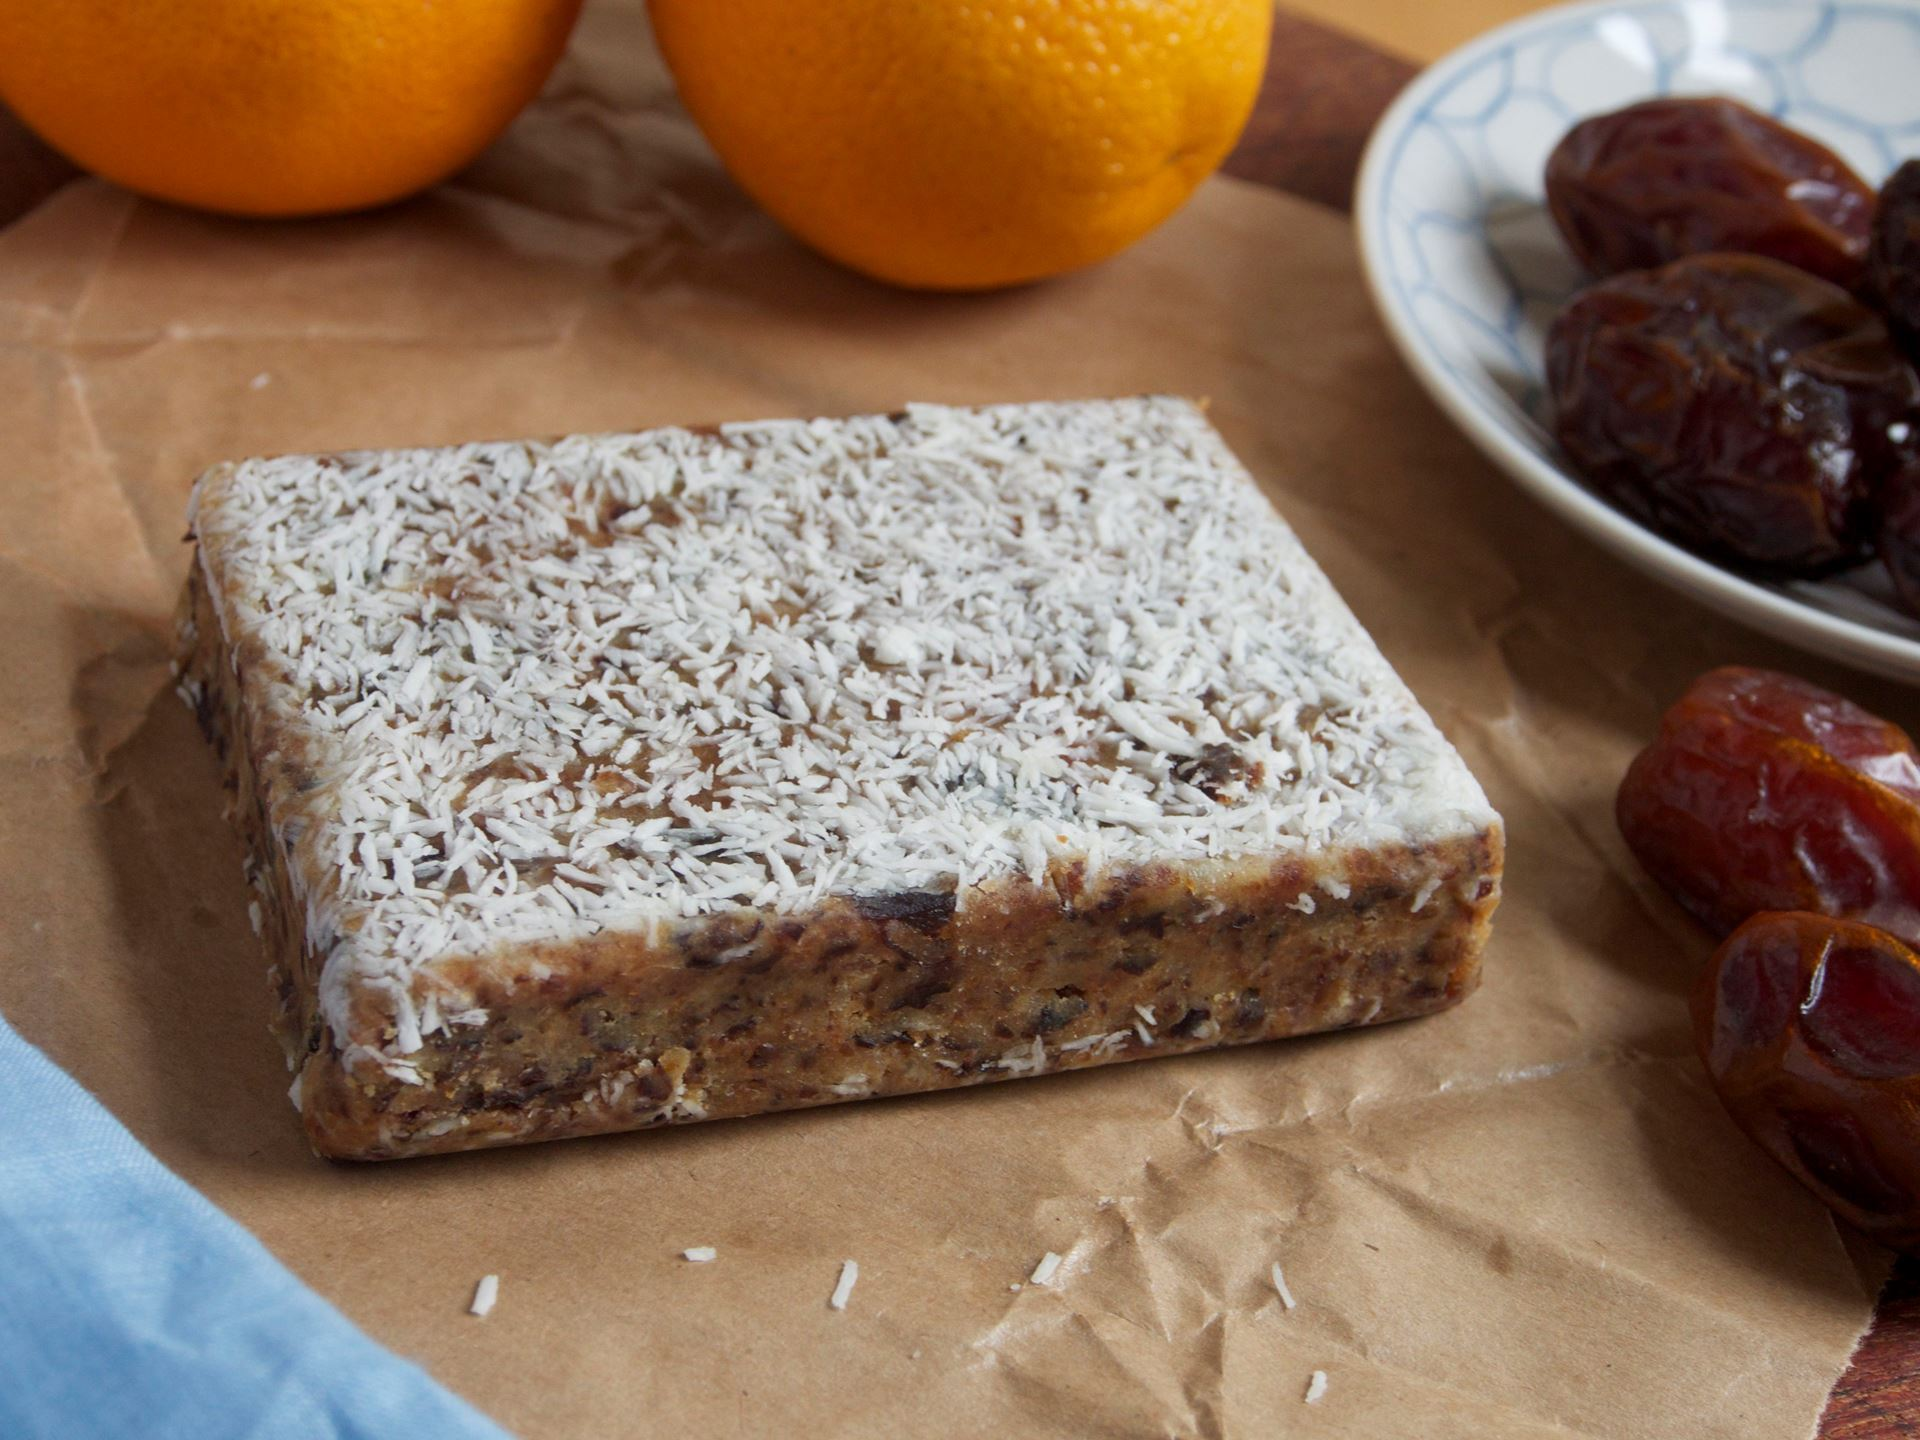 Picture of Transit Bar (Coconut Date Bar with Dried Plums)